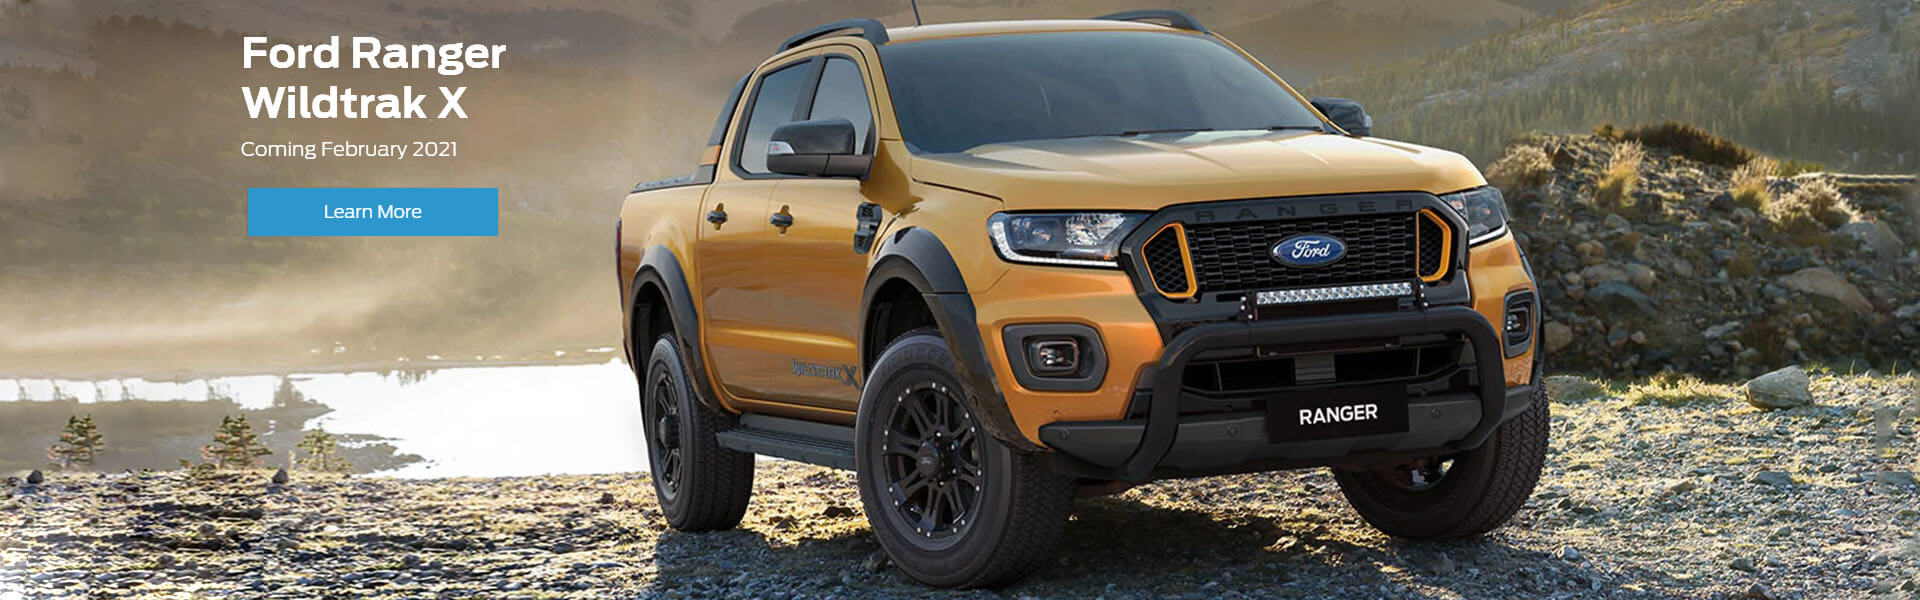 Ford Ranger Wildtrak X - Coming February 2021